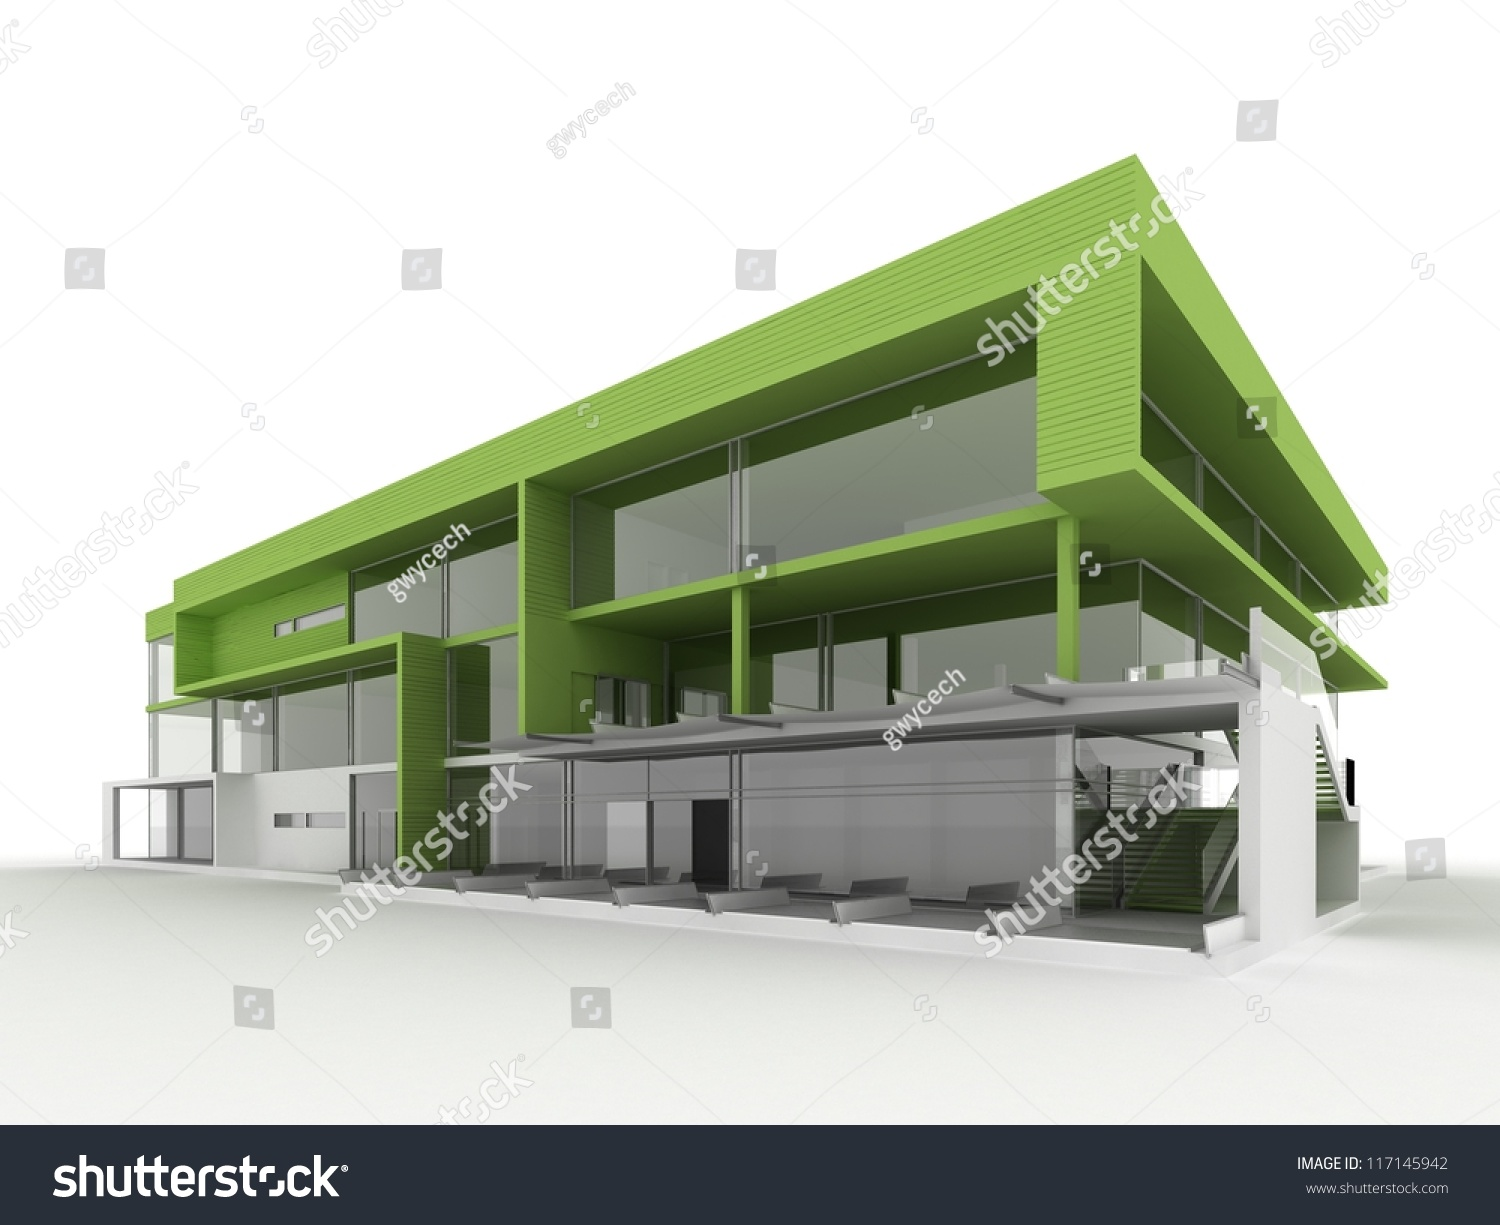 Design Modern Office Building Environmentally Friendly